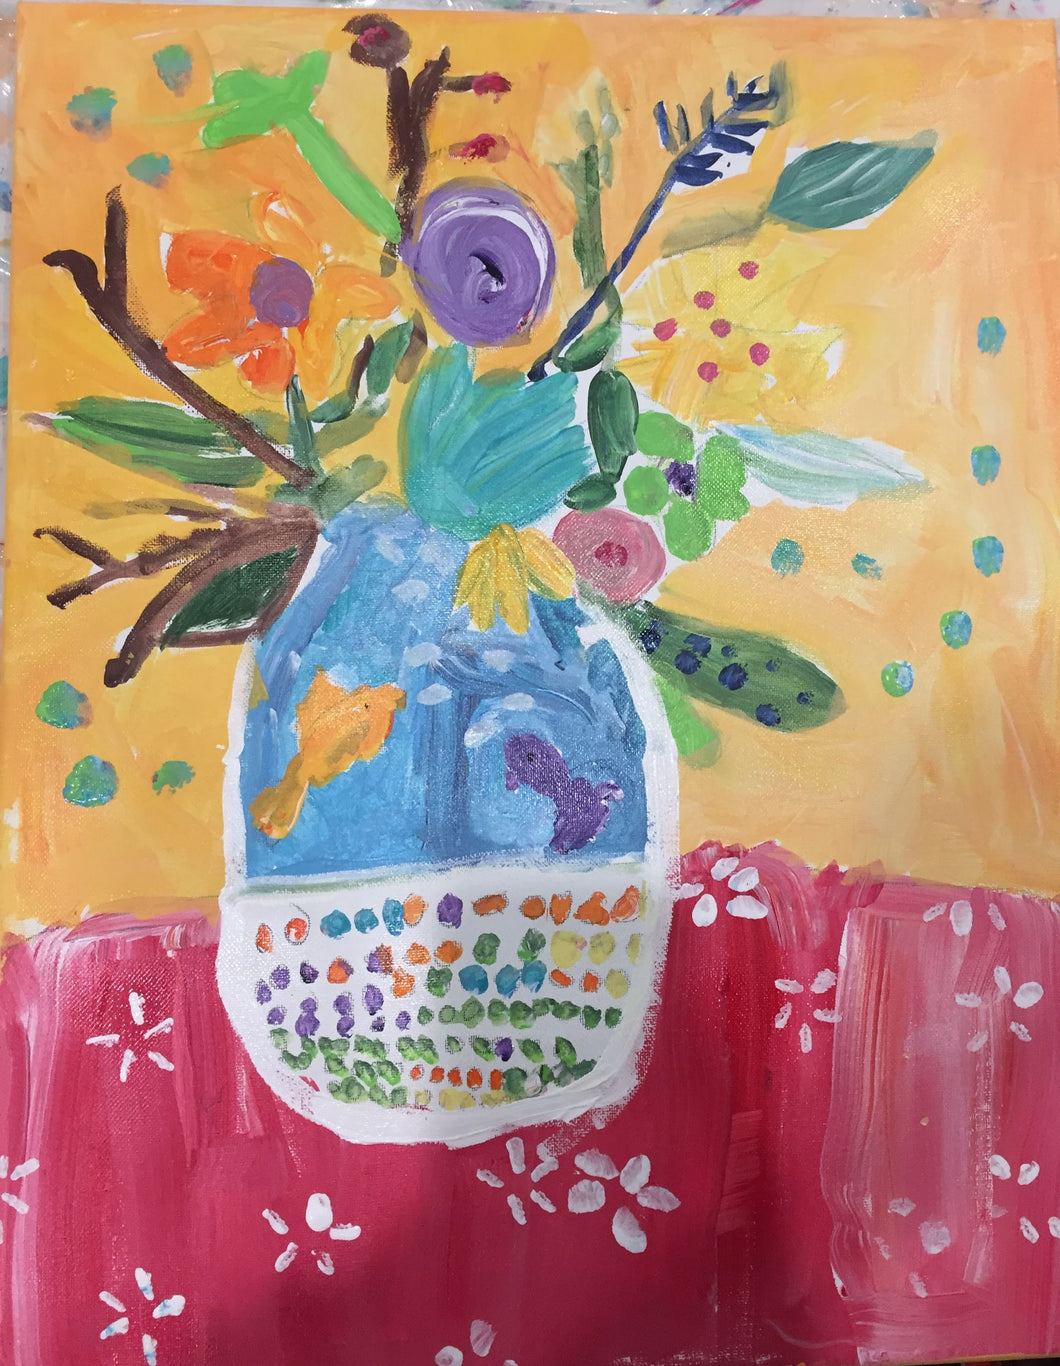 ART CAMP MORNING SESSION 9:30-11:30 a.m. June 10,11,12